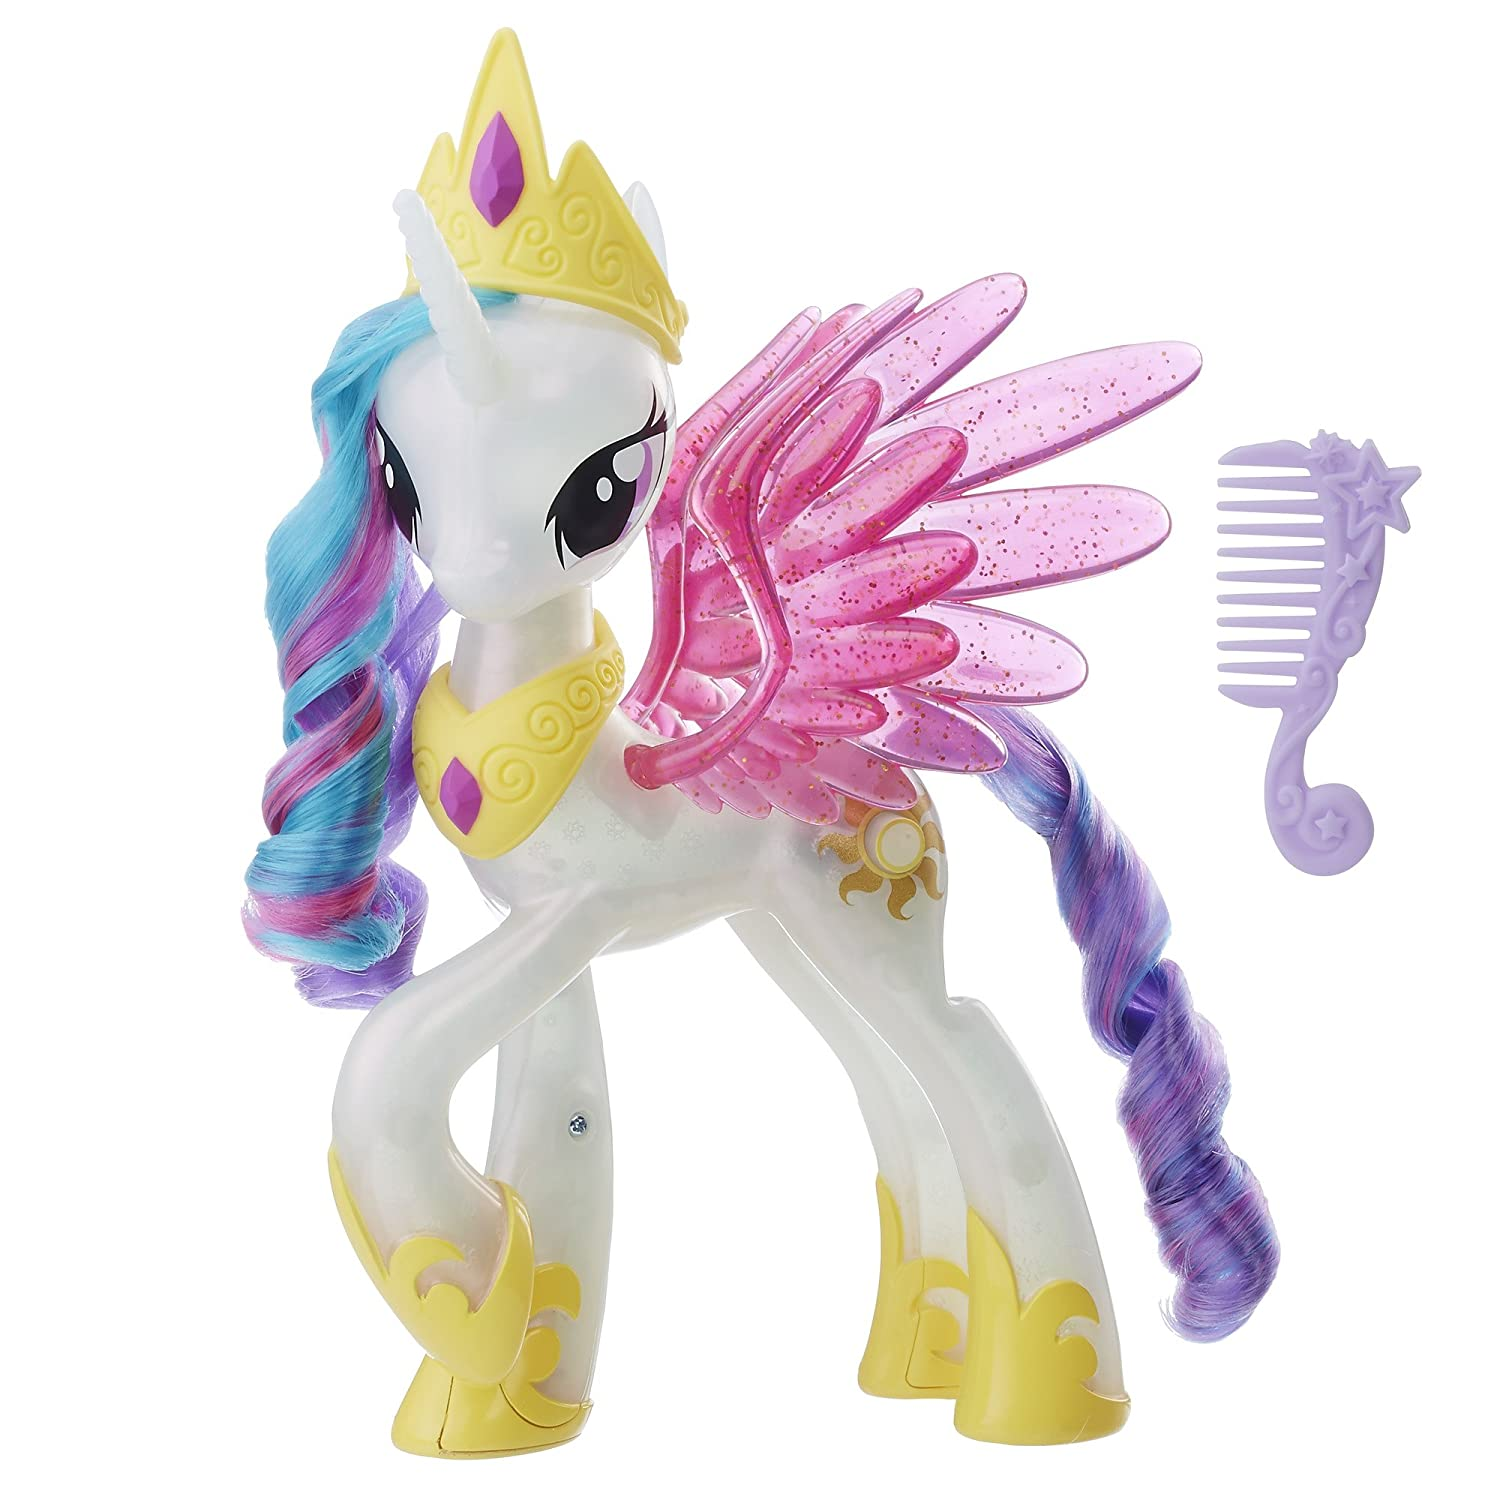 Top 11 Best My Little Pony Toys Reviews in 2020 10